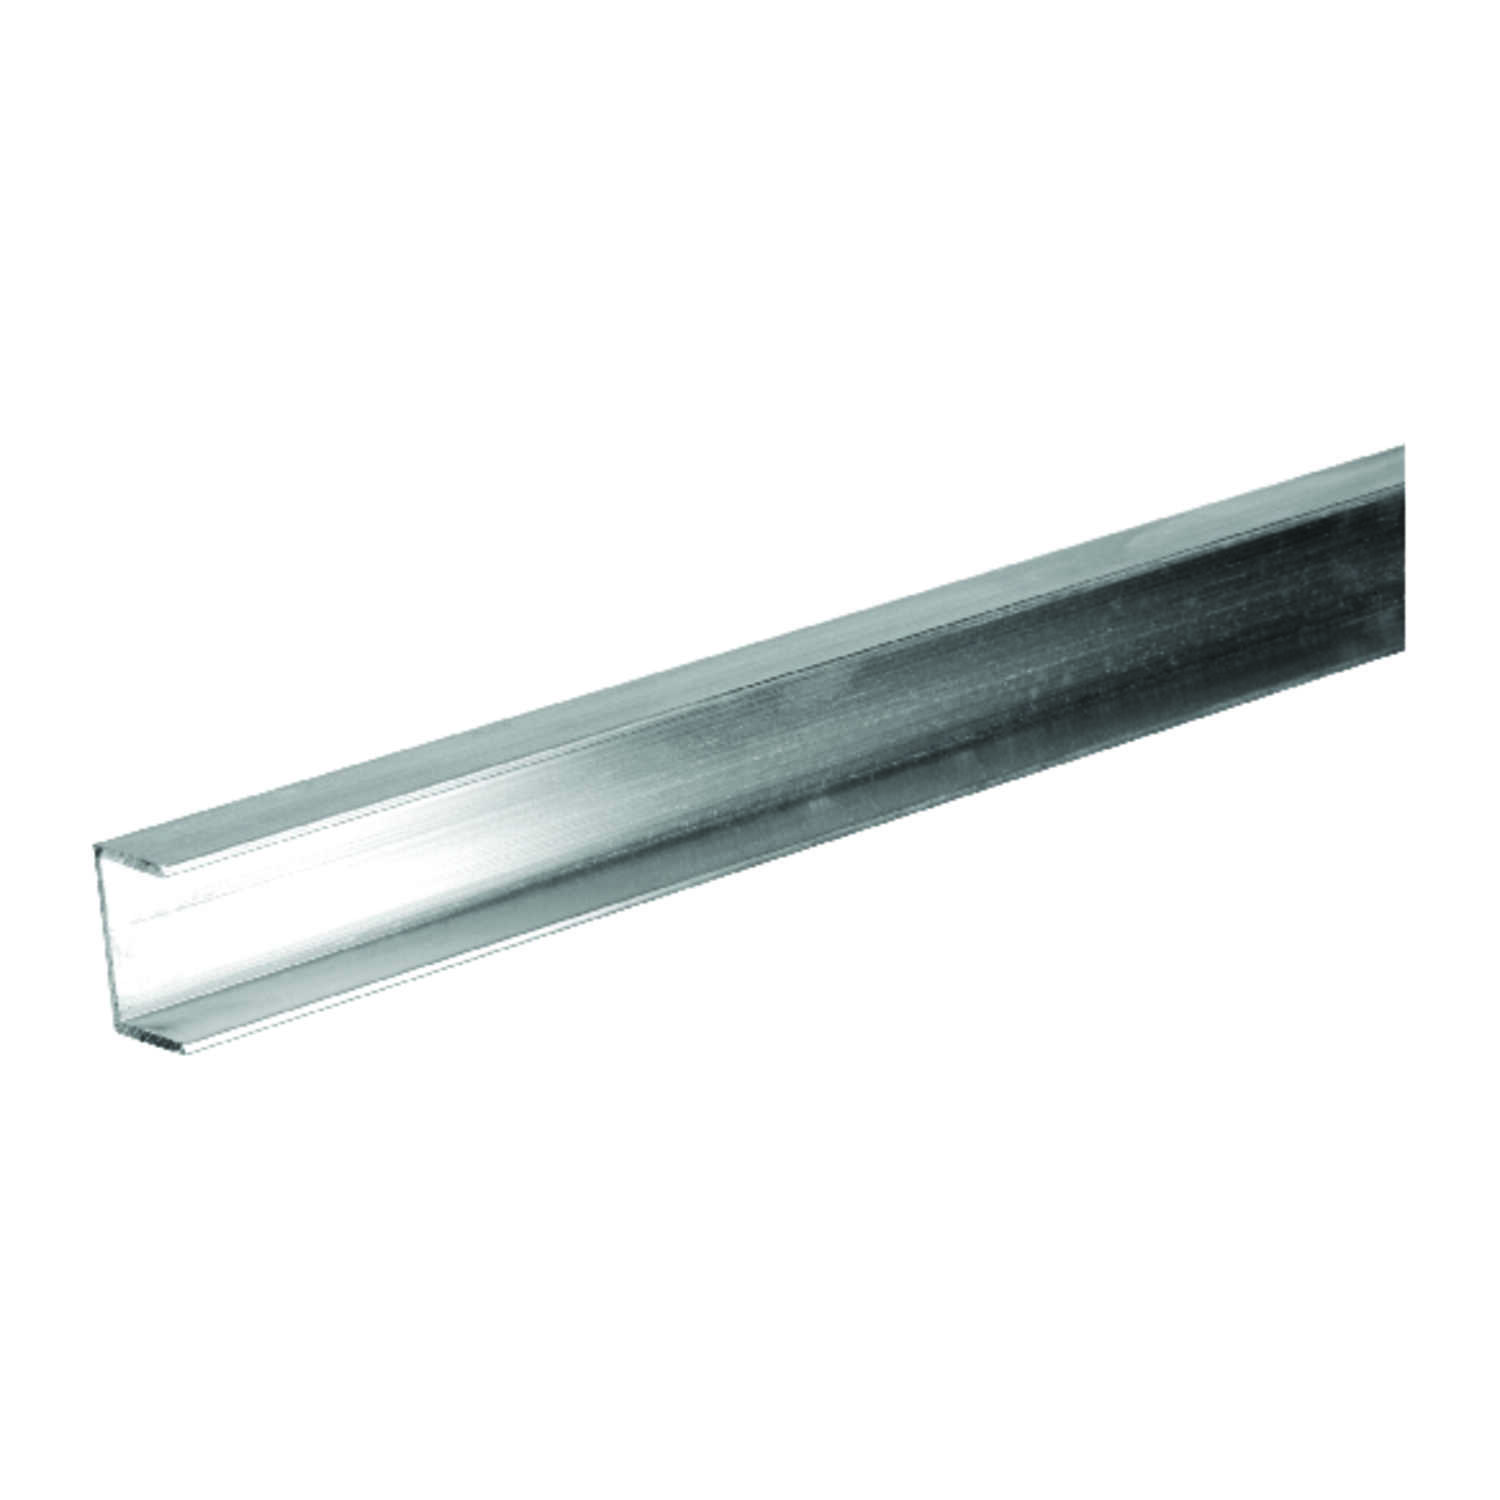 Boltmaster  0.5 in. H x 0.5 in. H x 3/8 in. W x 96 in. L Aluminum  Trim Channel